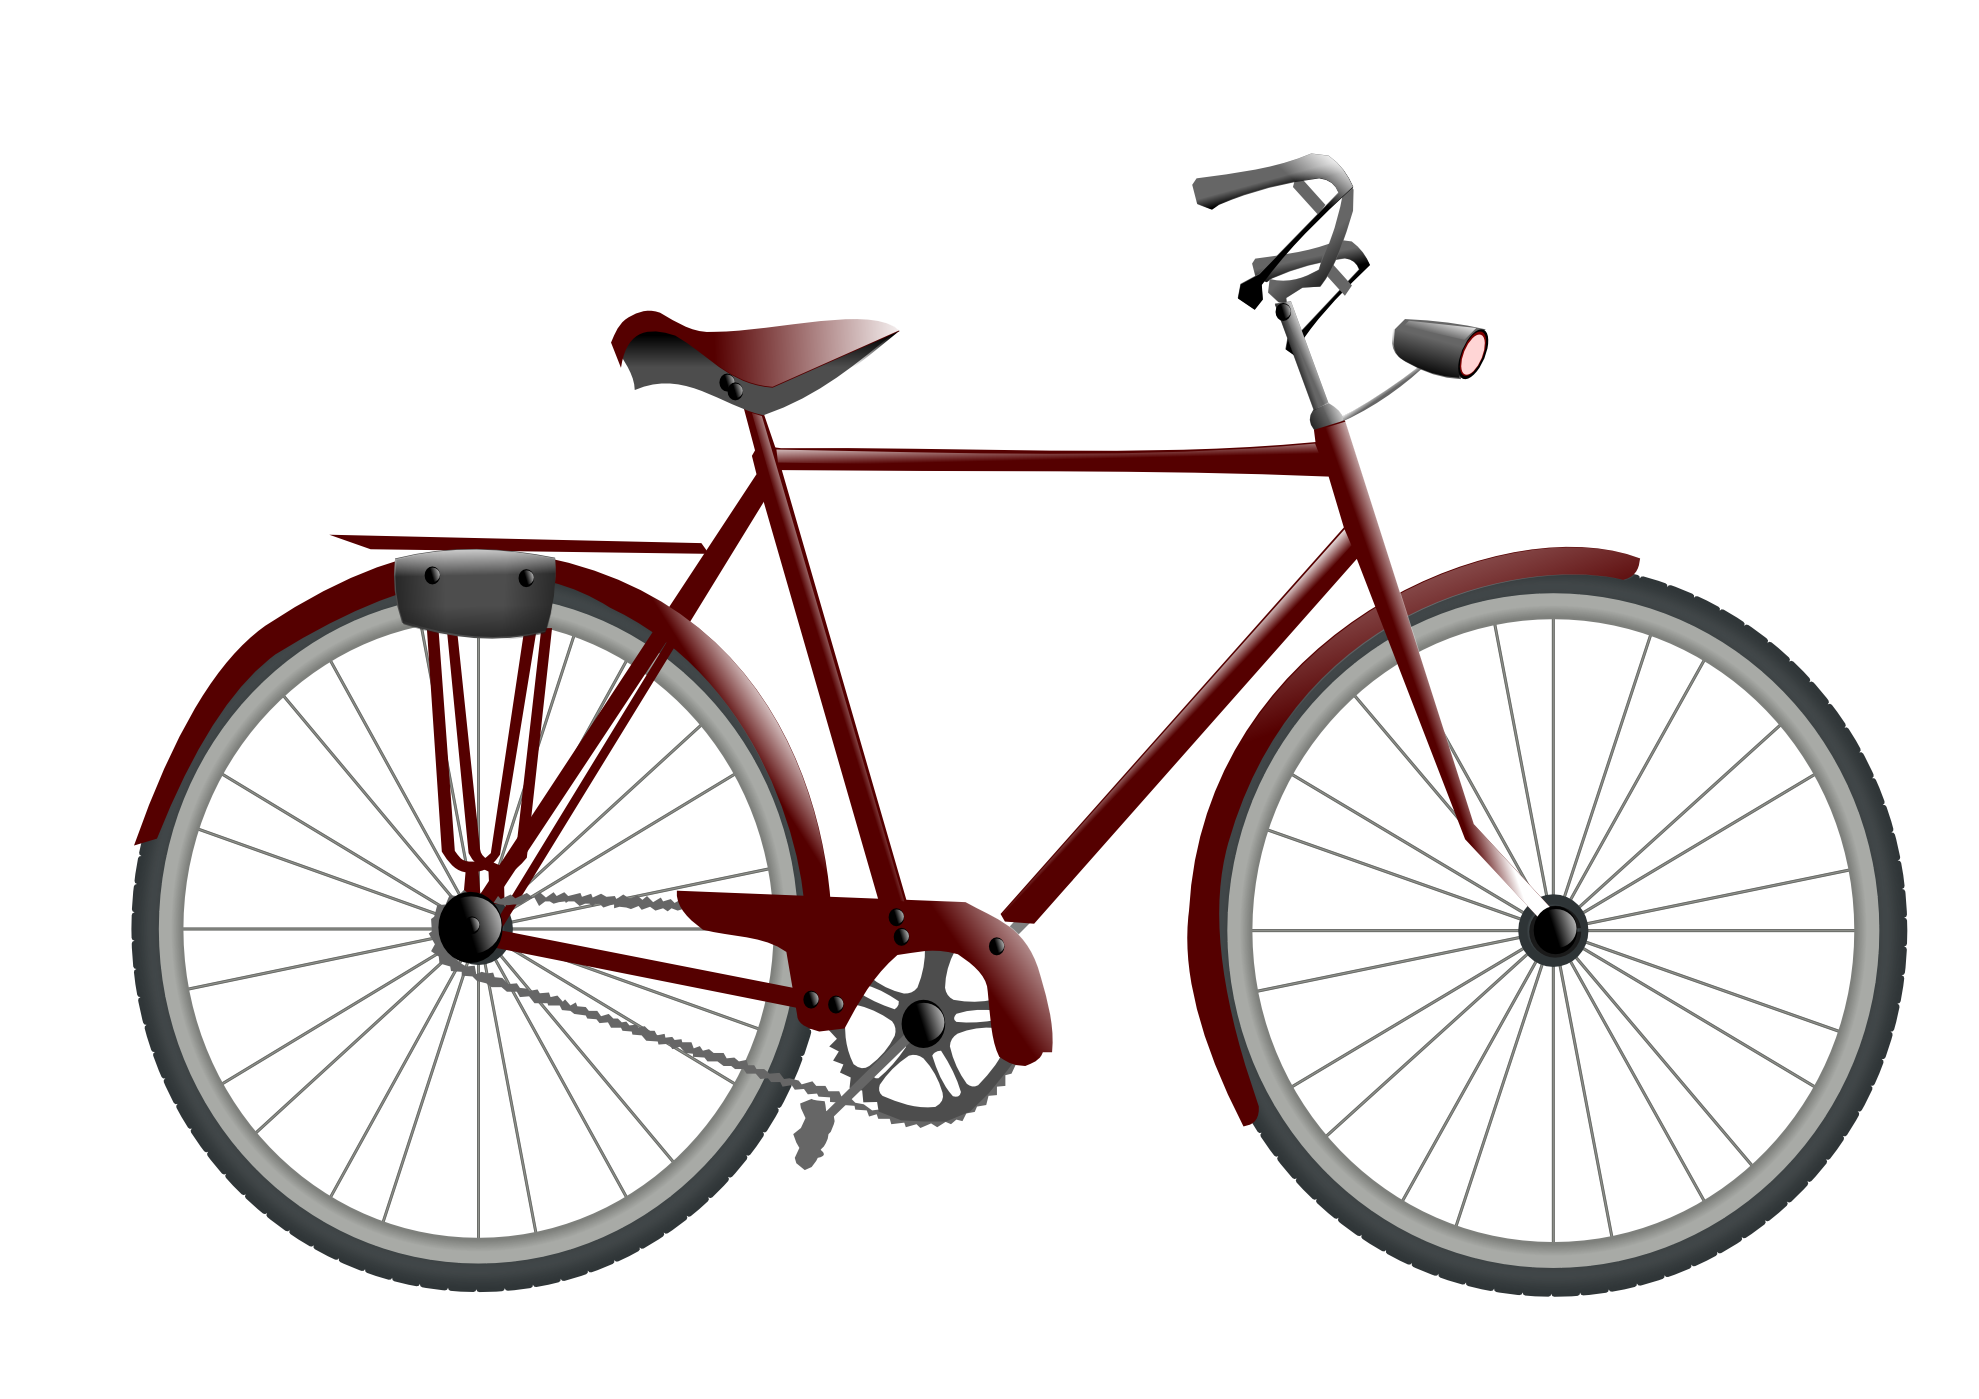 Image result for bicycle with basket clipart transparent background.